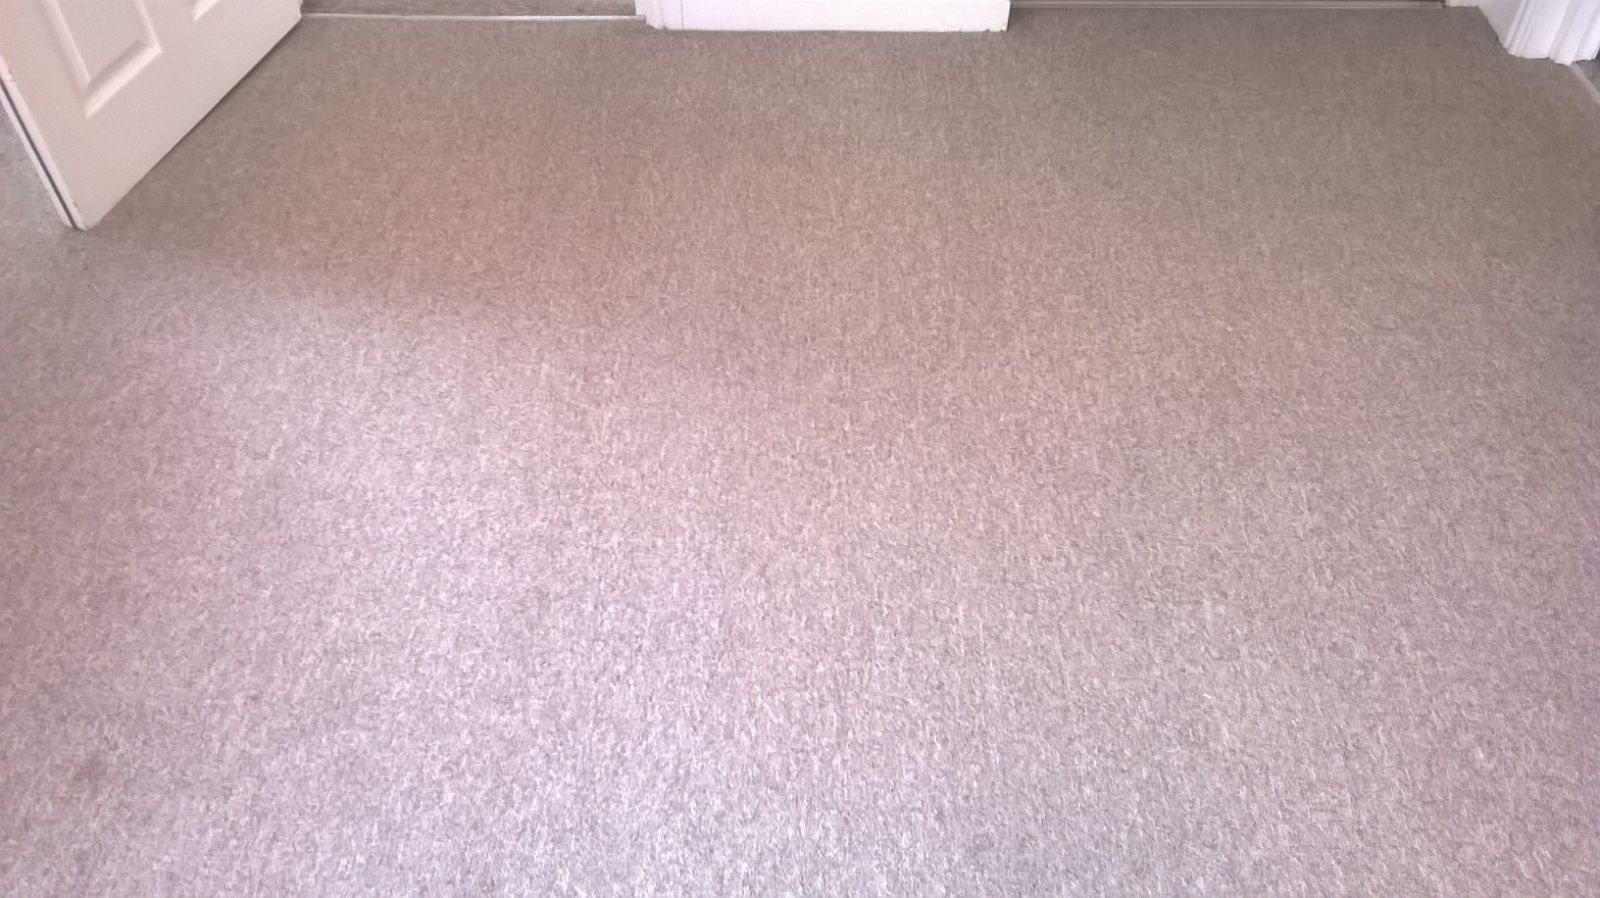 Carpet after LDM Services had cleaned it